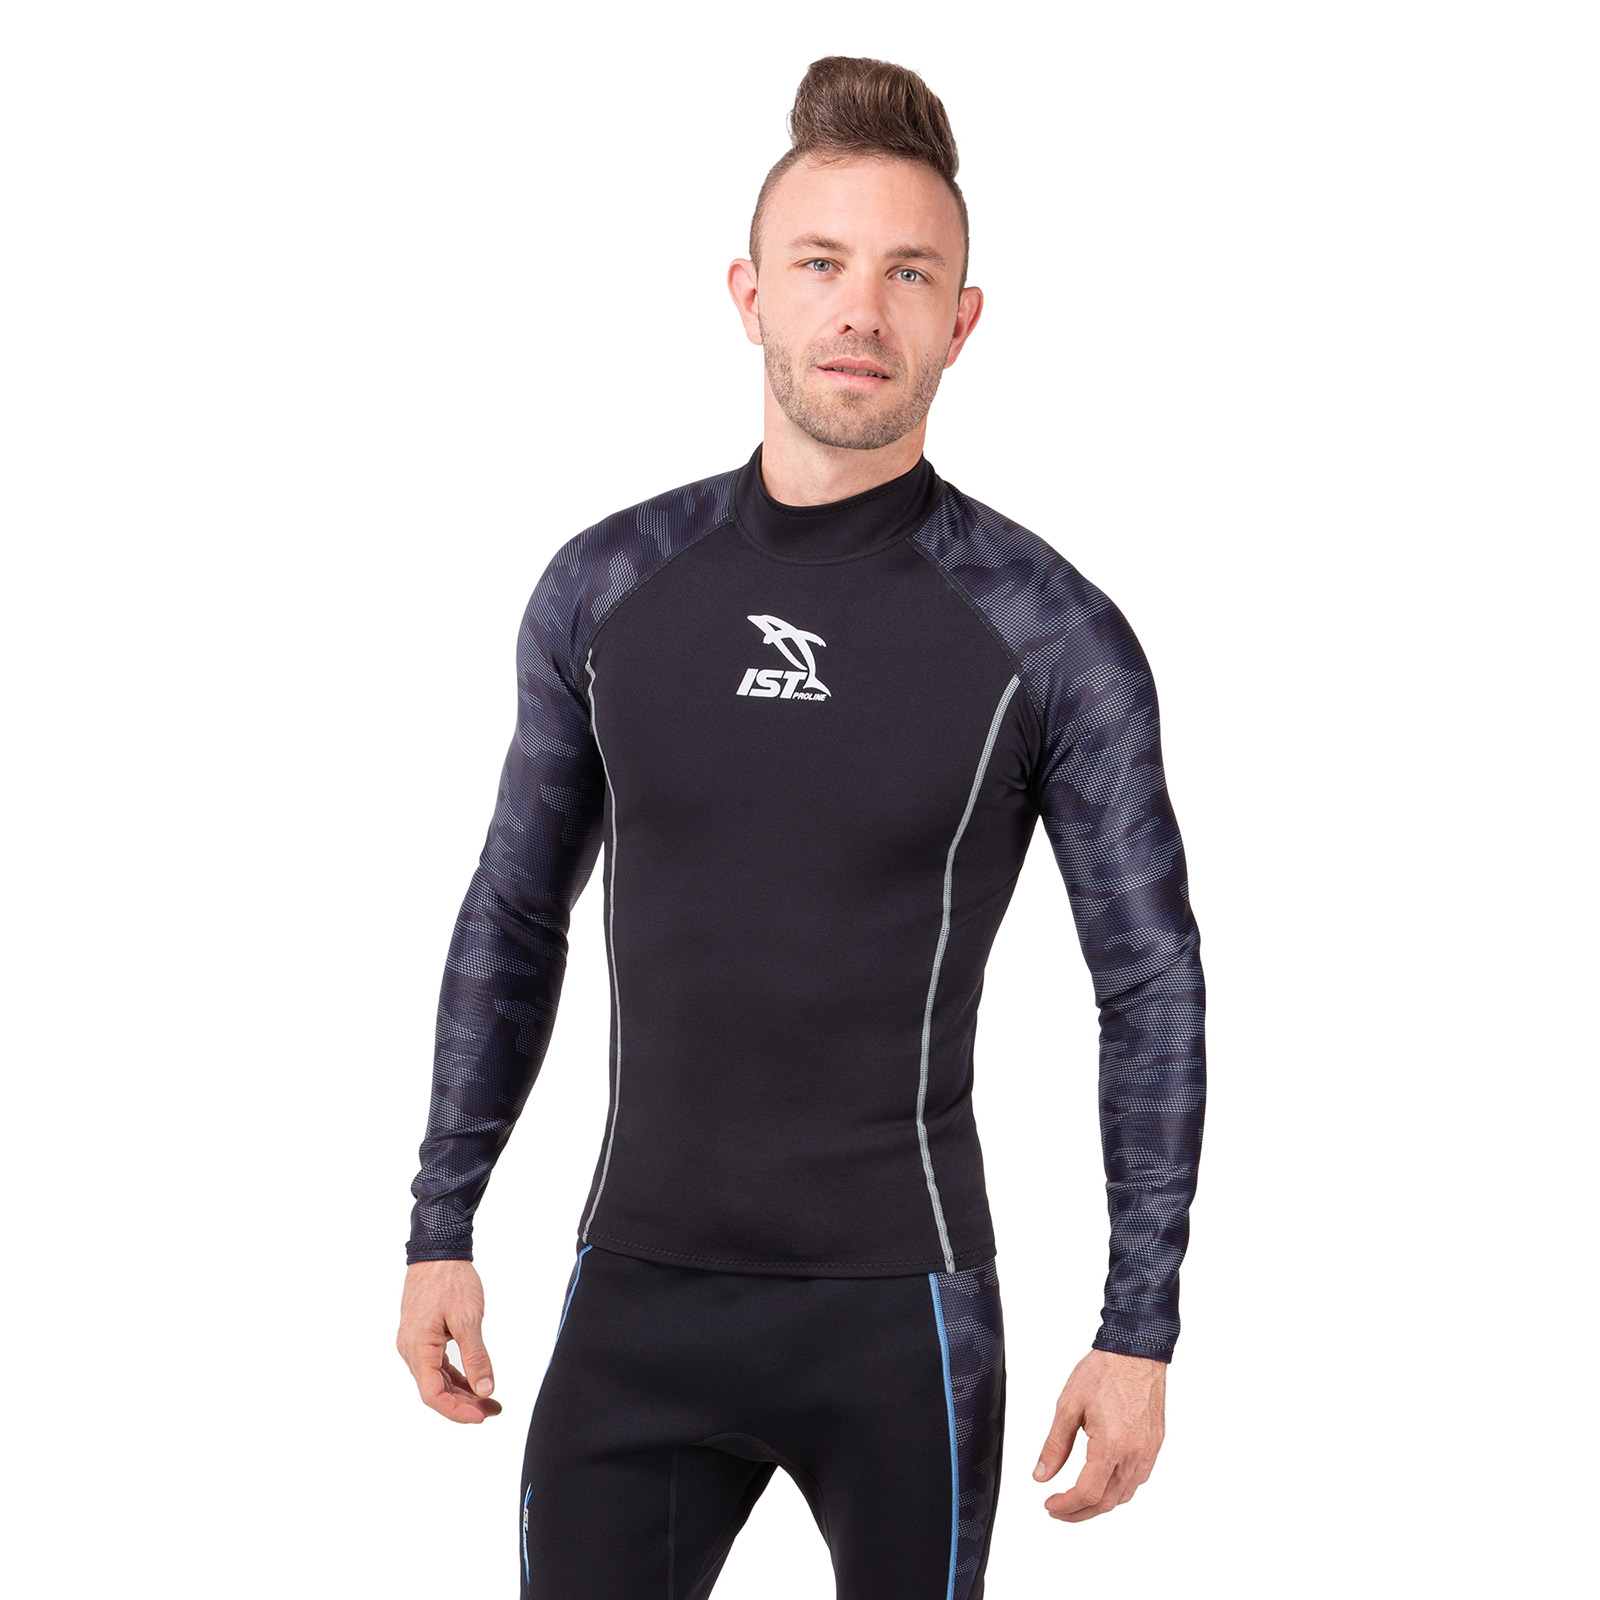 57986a5dda IST Diving System :: RECREATIONAL :: WETSUITS & DIVE SKINS